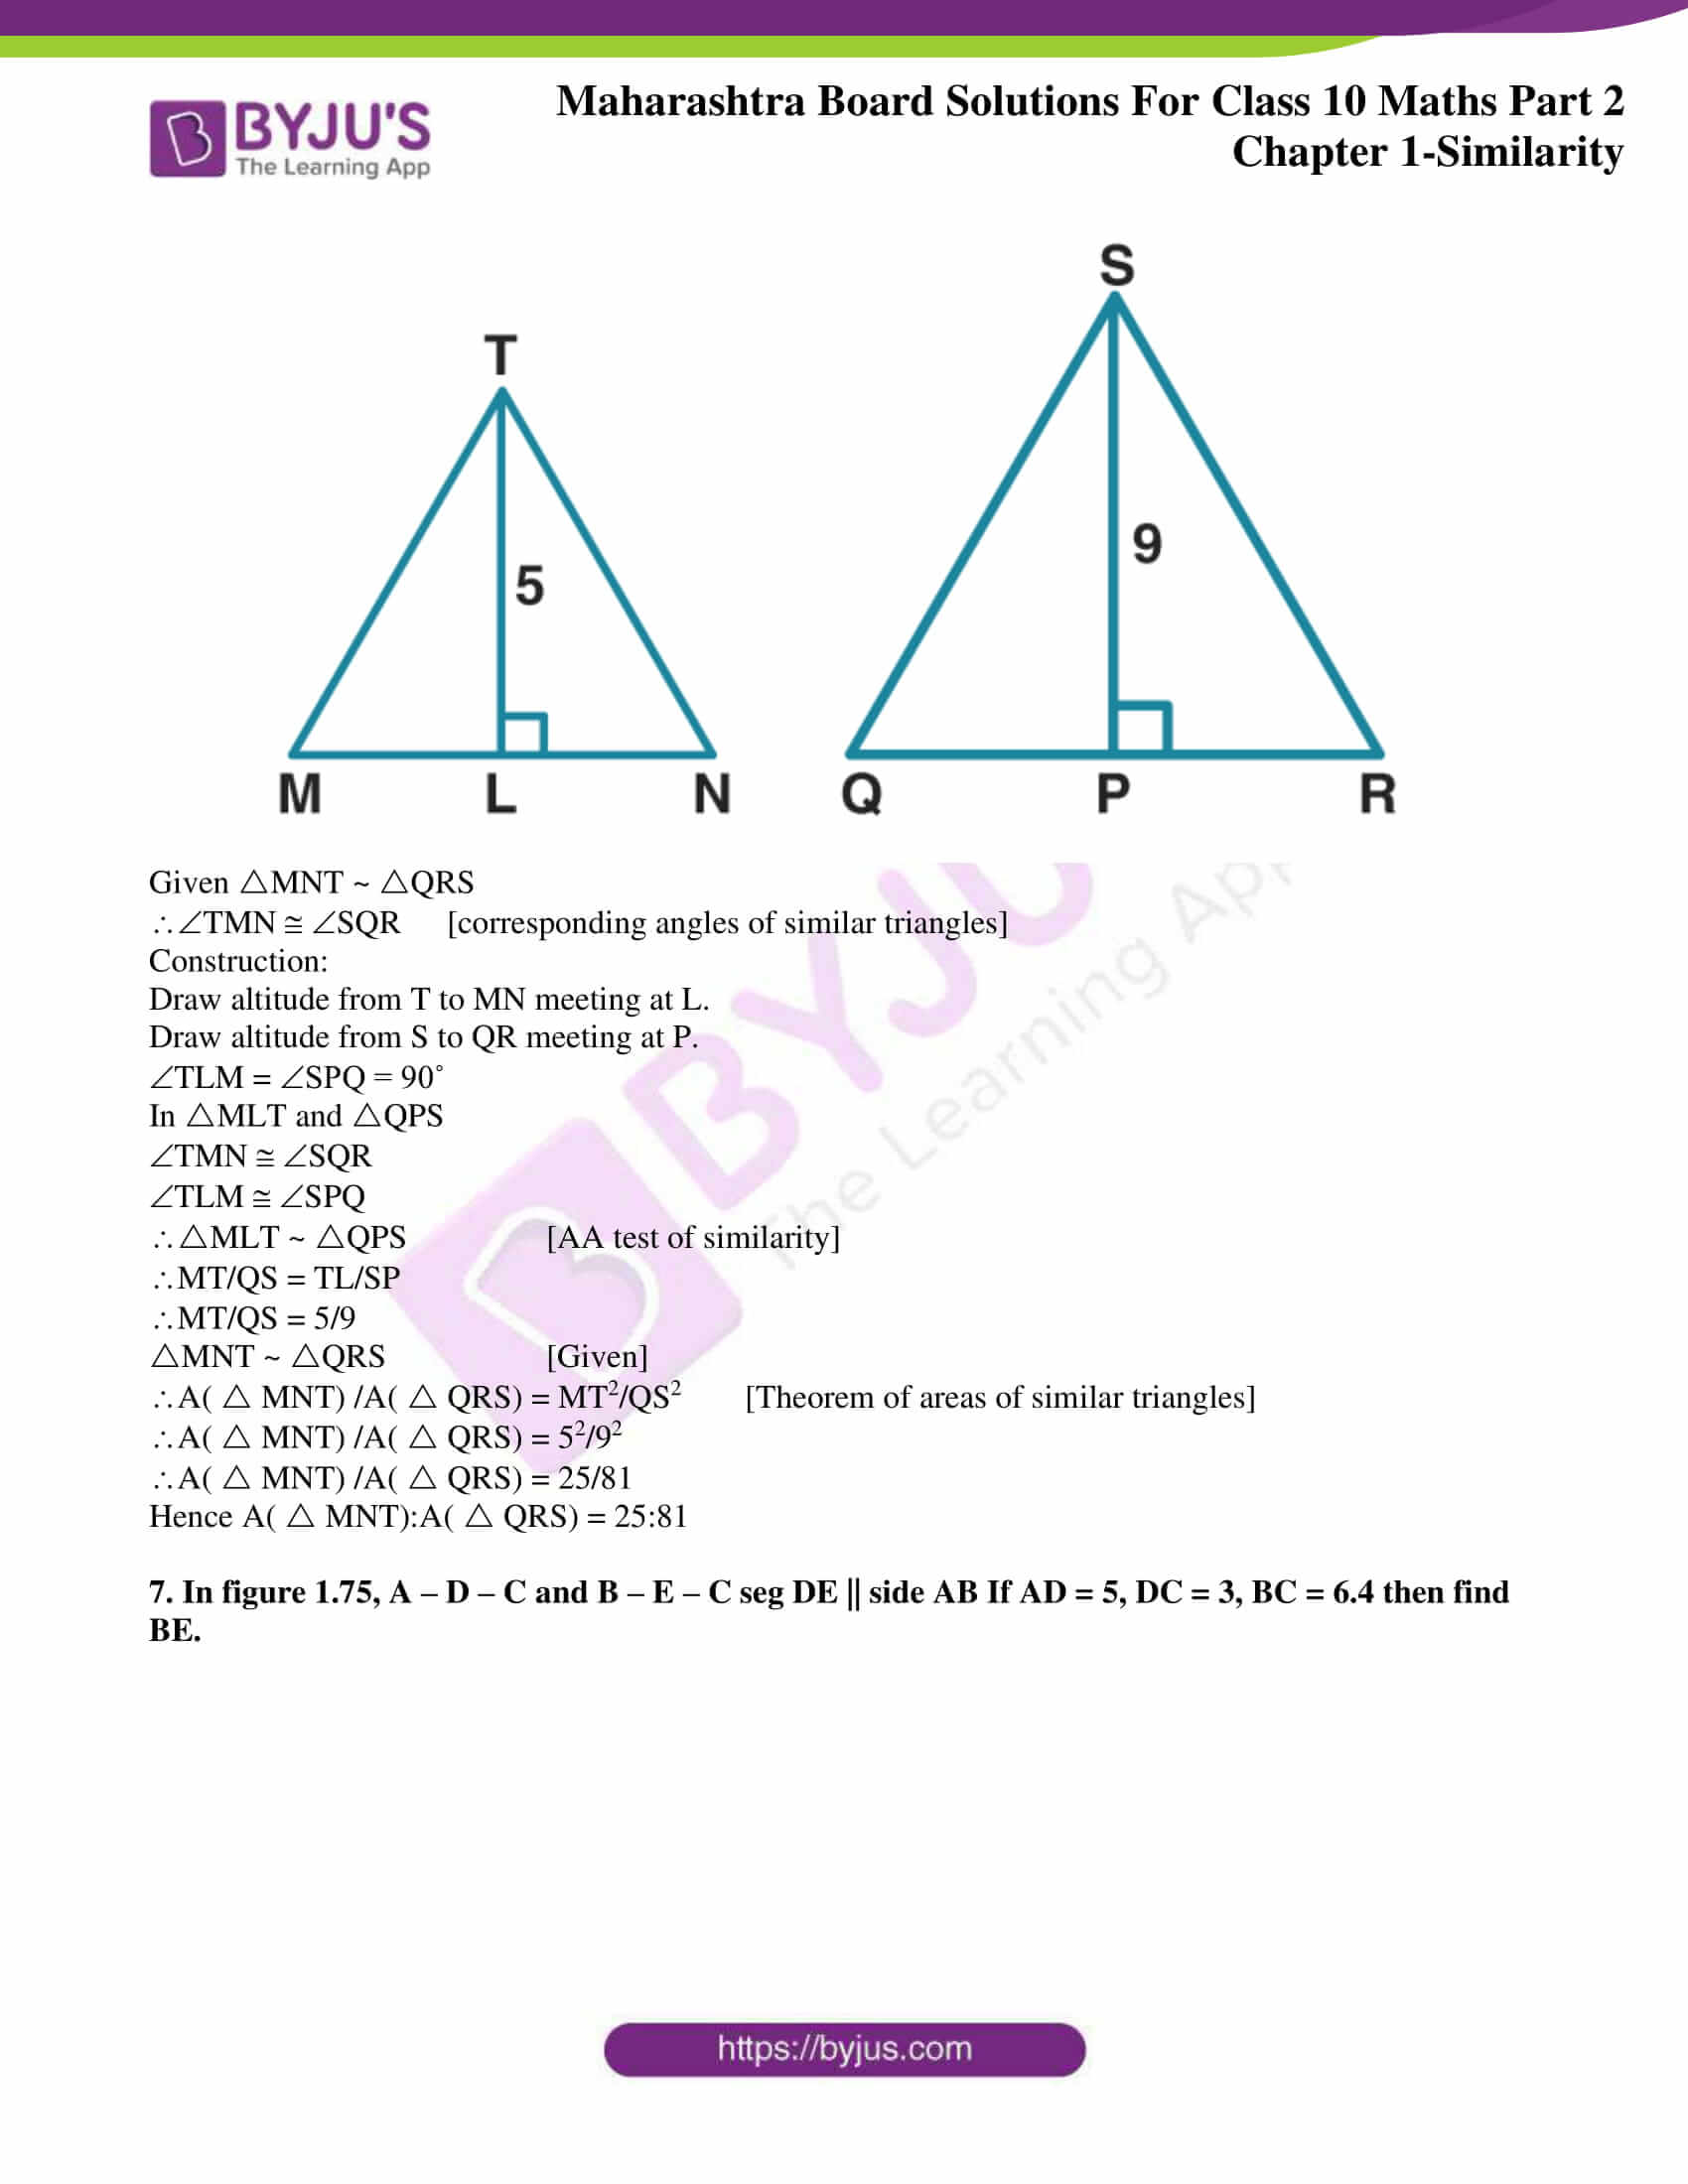 msbshse sol class 10 maths part 2 chapter 1 24